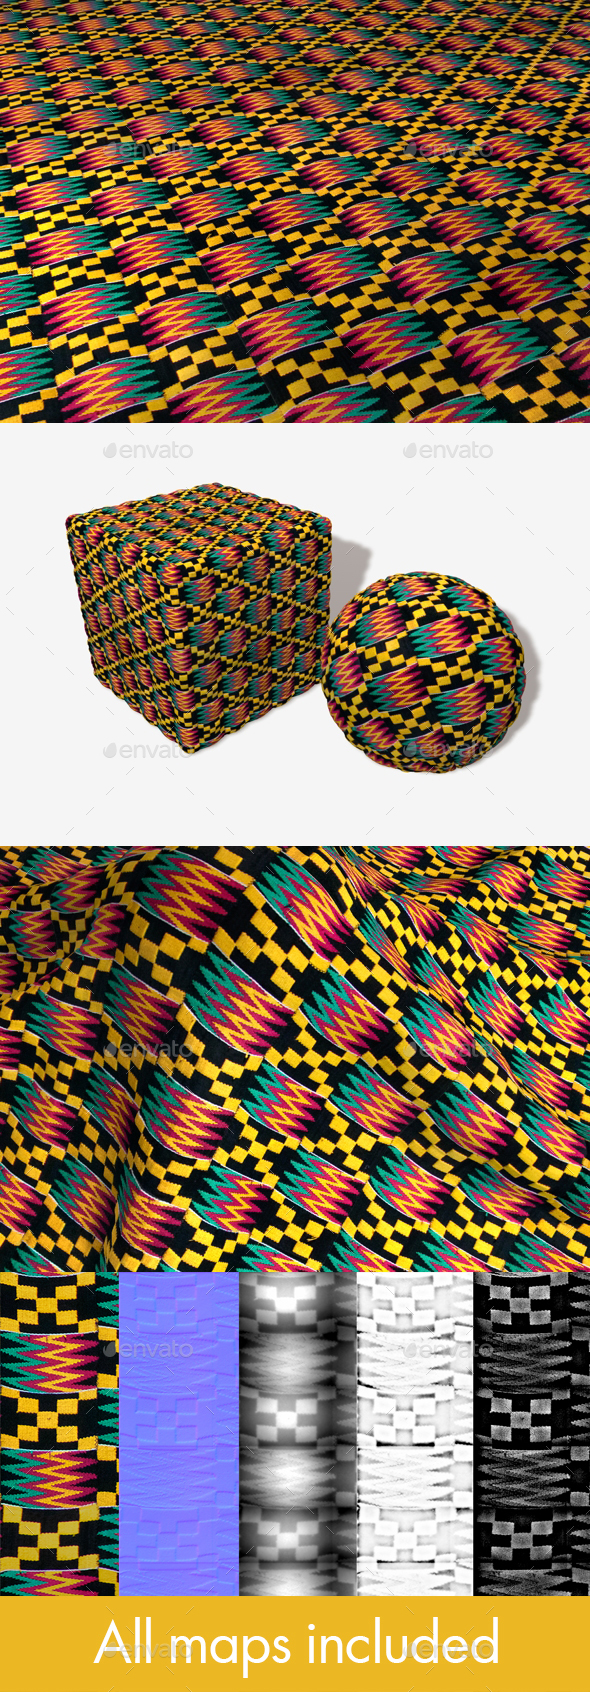 African Fabric Seamless Texture - 3DOcean Item for Sale